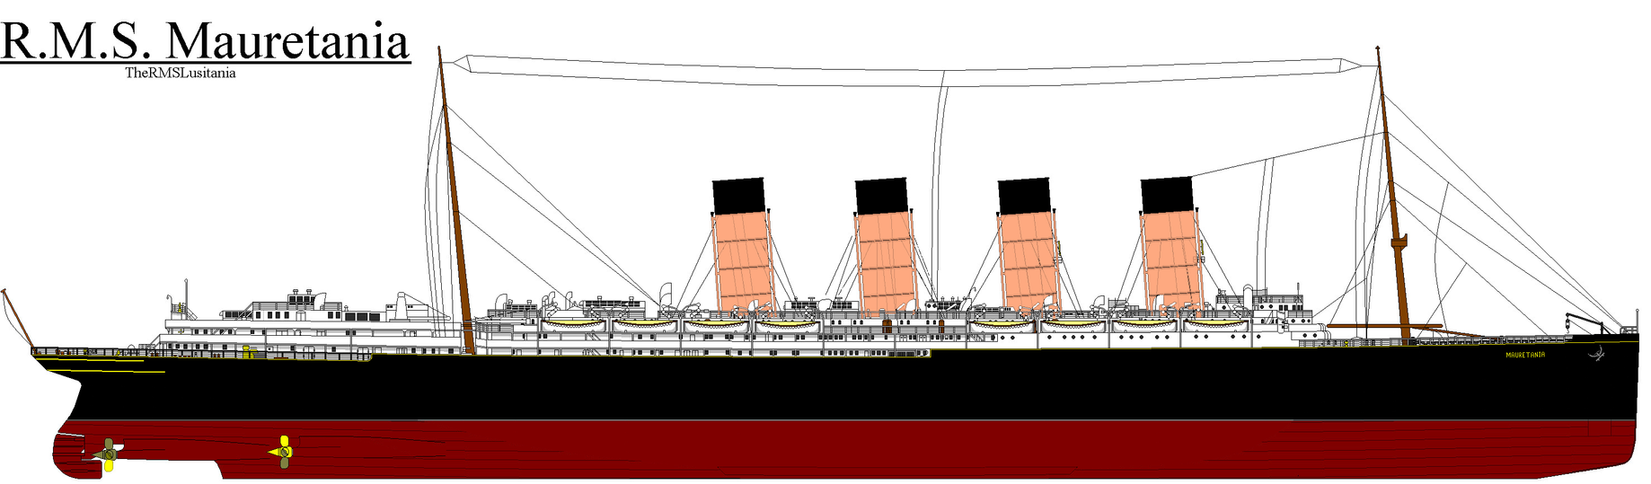 R M S Mauretania Eccl By Thequeenmary1 On Deviantart